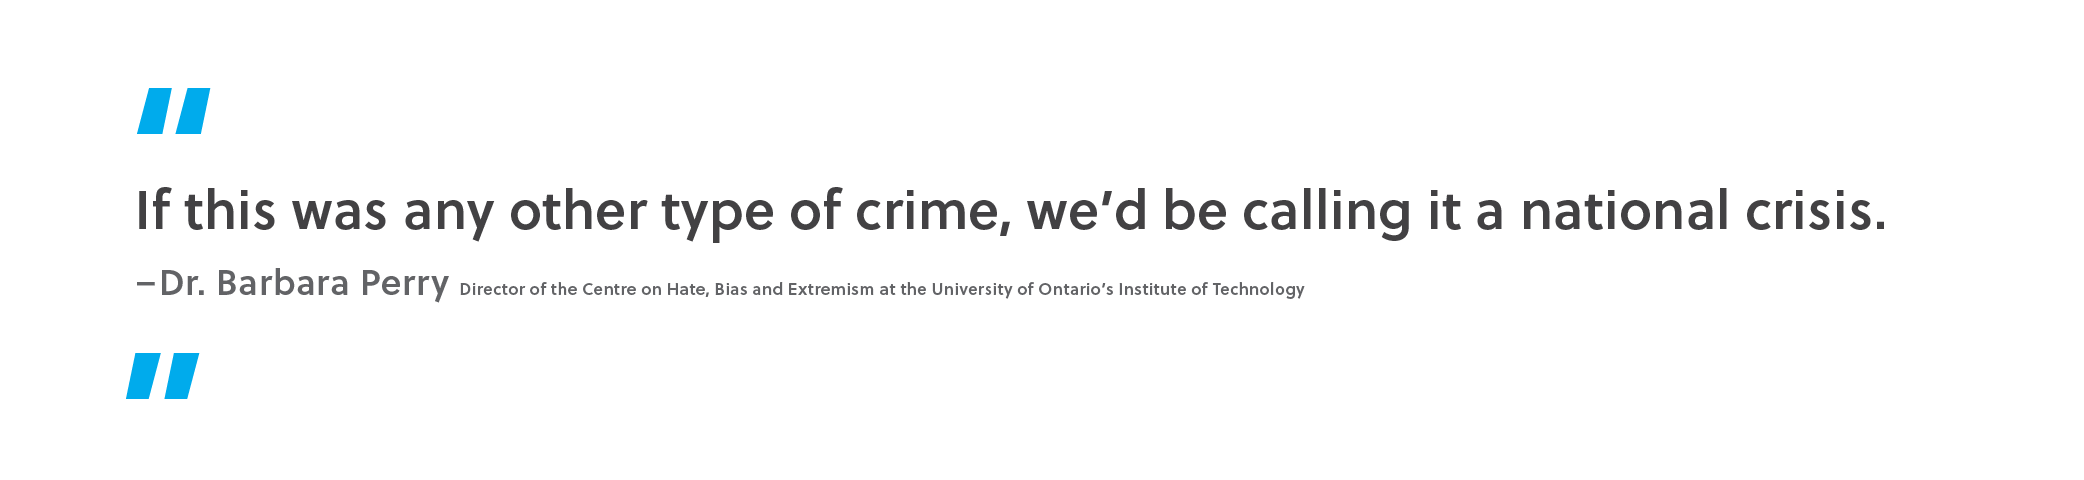 Quote. If this was any other type of crime, we'd be calling it a national crisis. Unquote. Dr. Barbara Perry, director of the Centre on Hate, Bias and Extremism at the University of Ontario's Institute of Technology.